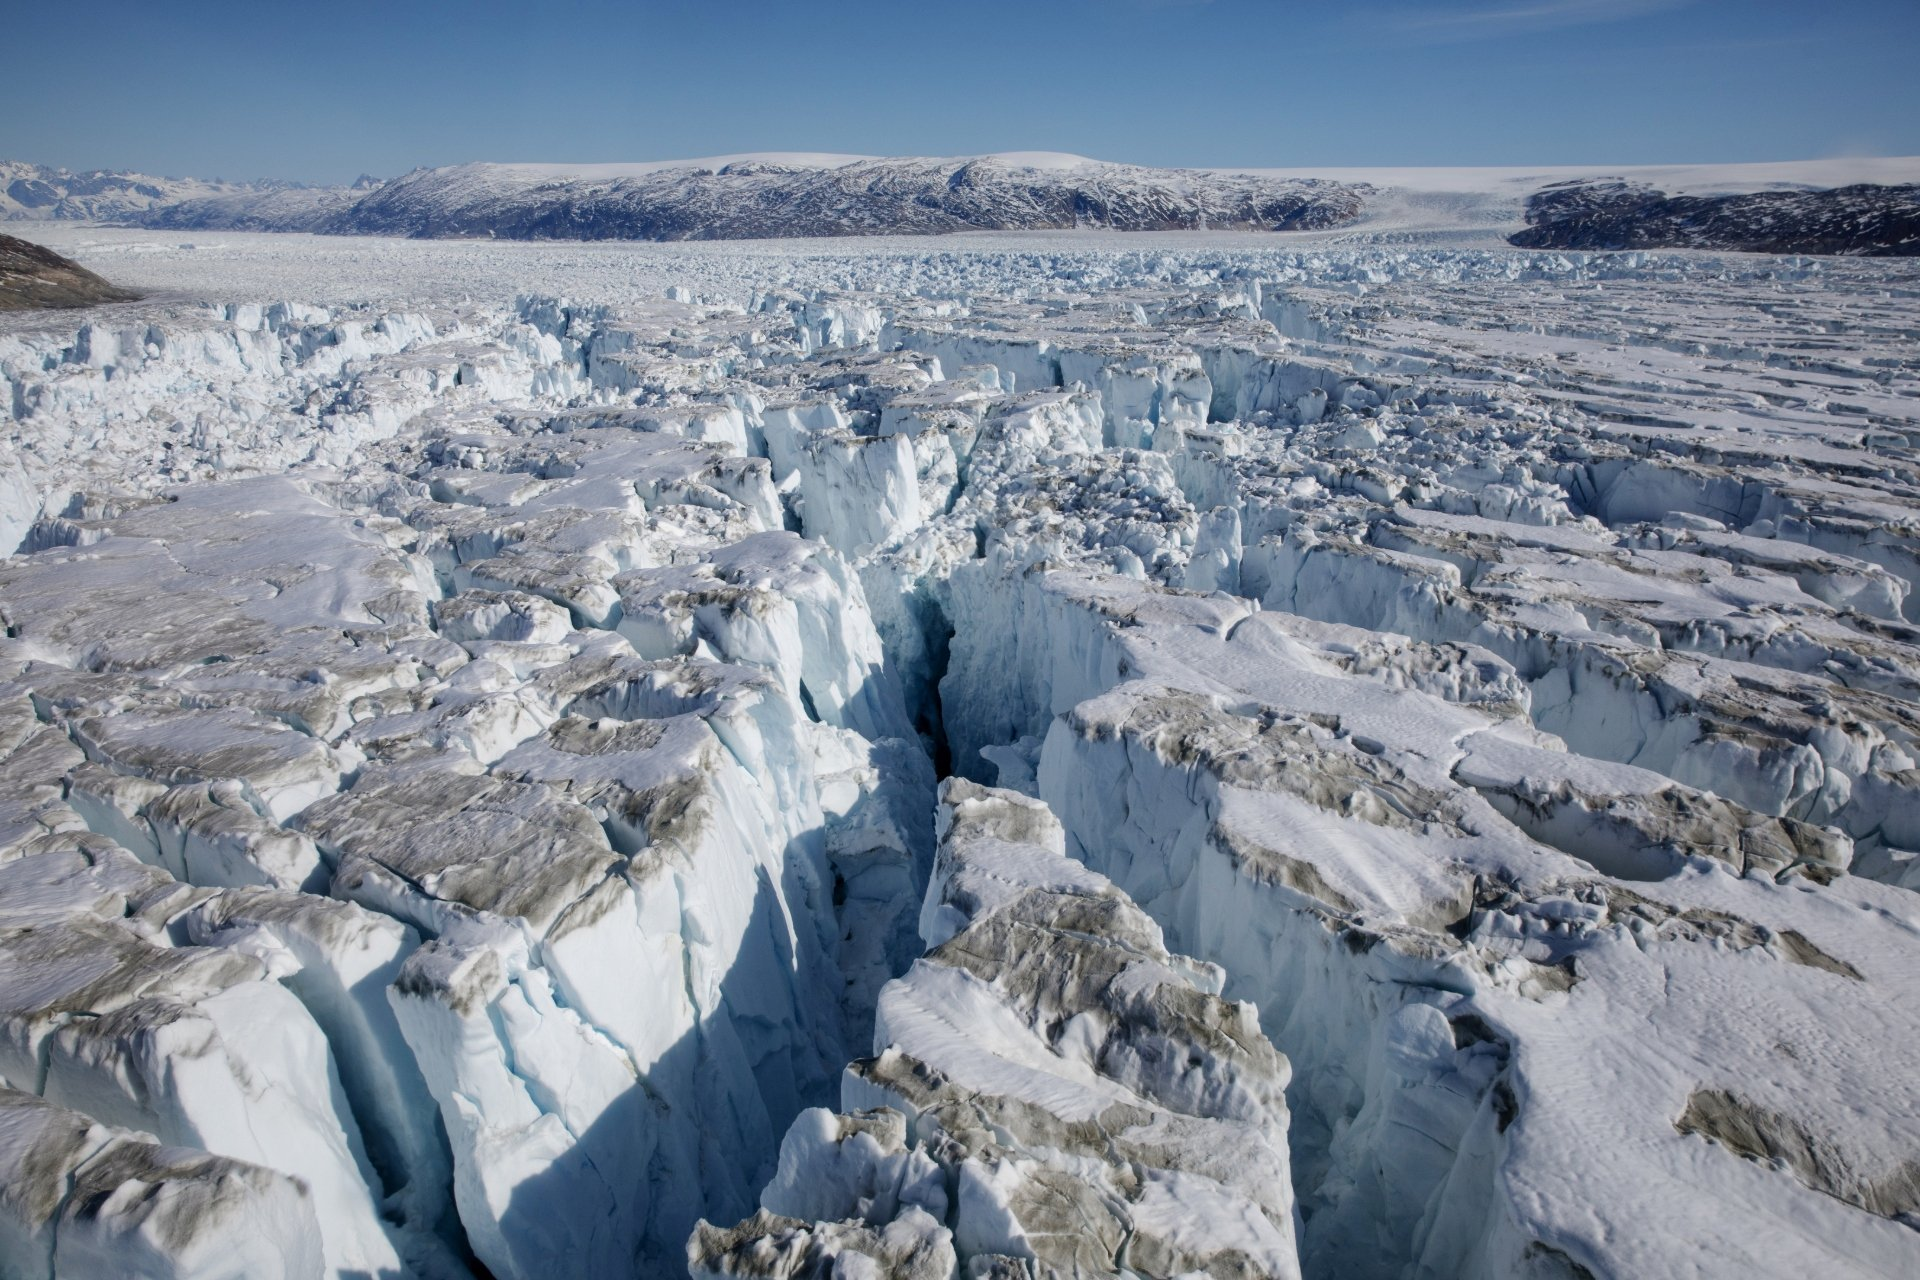 Greenland's ice sheet saw record mass loss in 2019, study finds ...